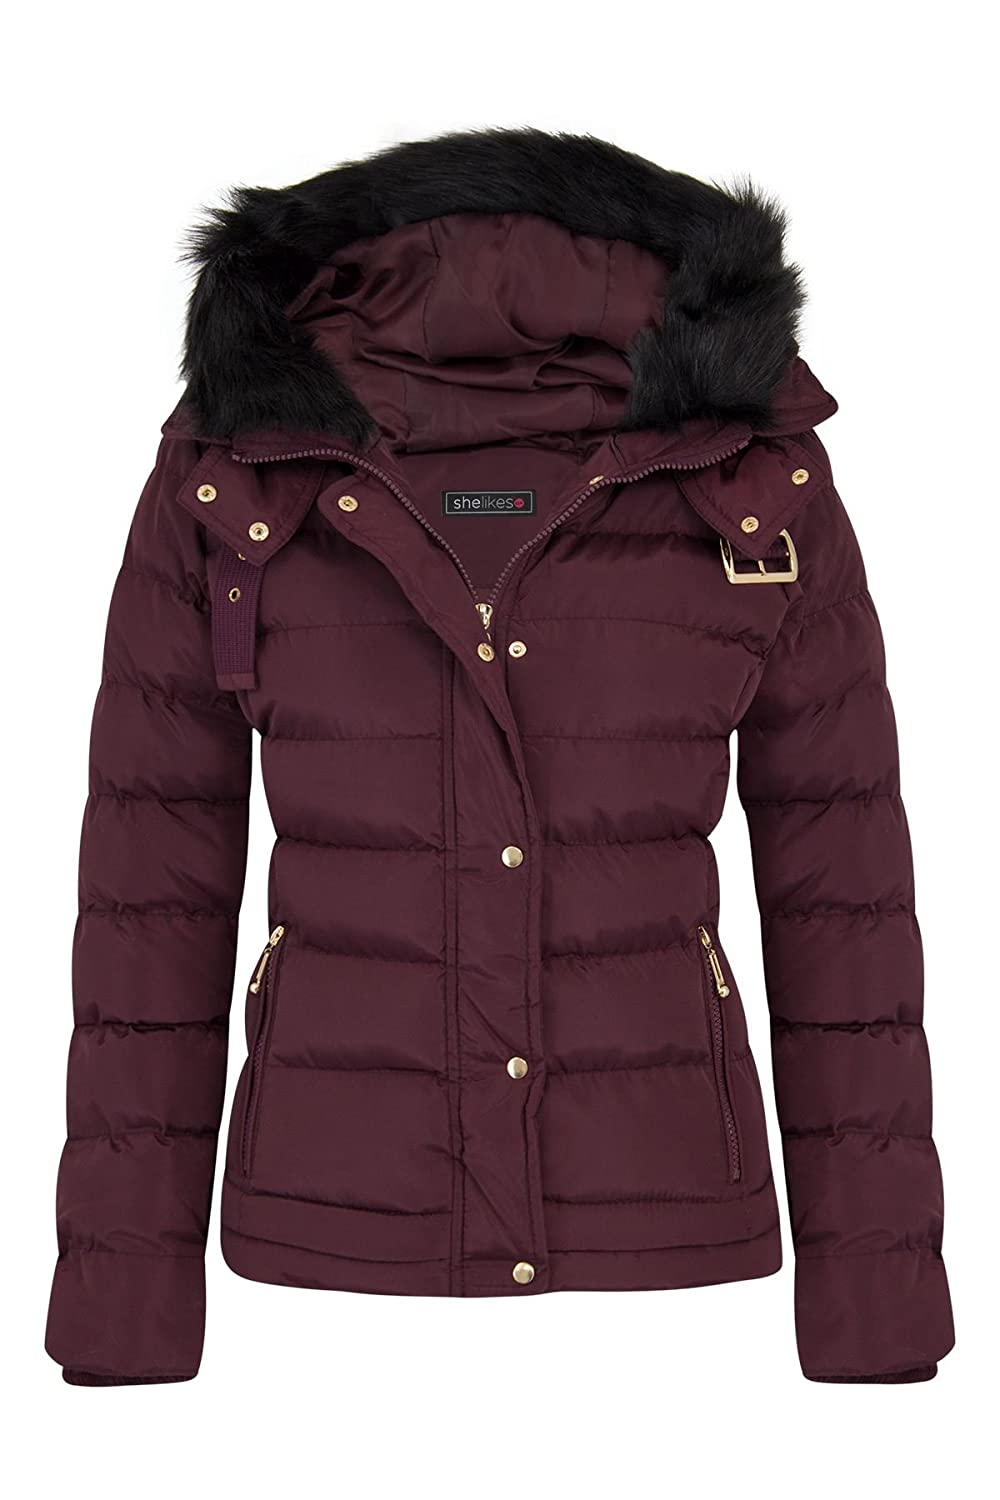 shelikes Womens Quilted Winter Padded Coat UK 8-16